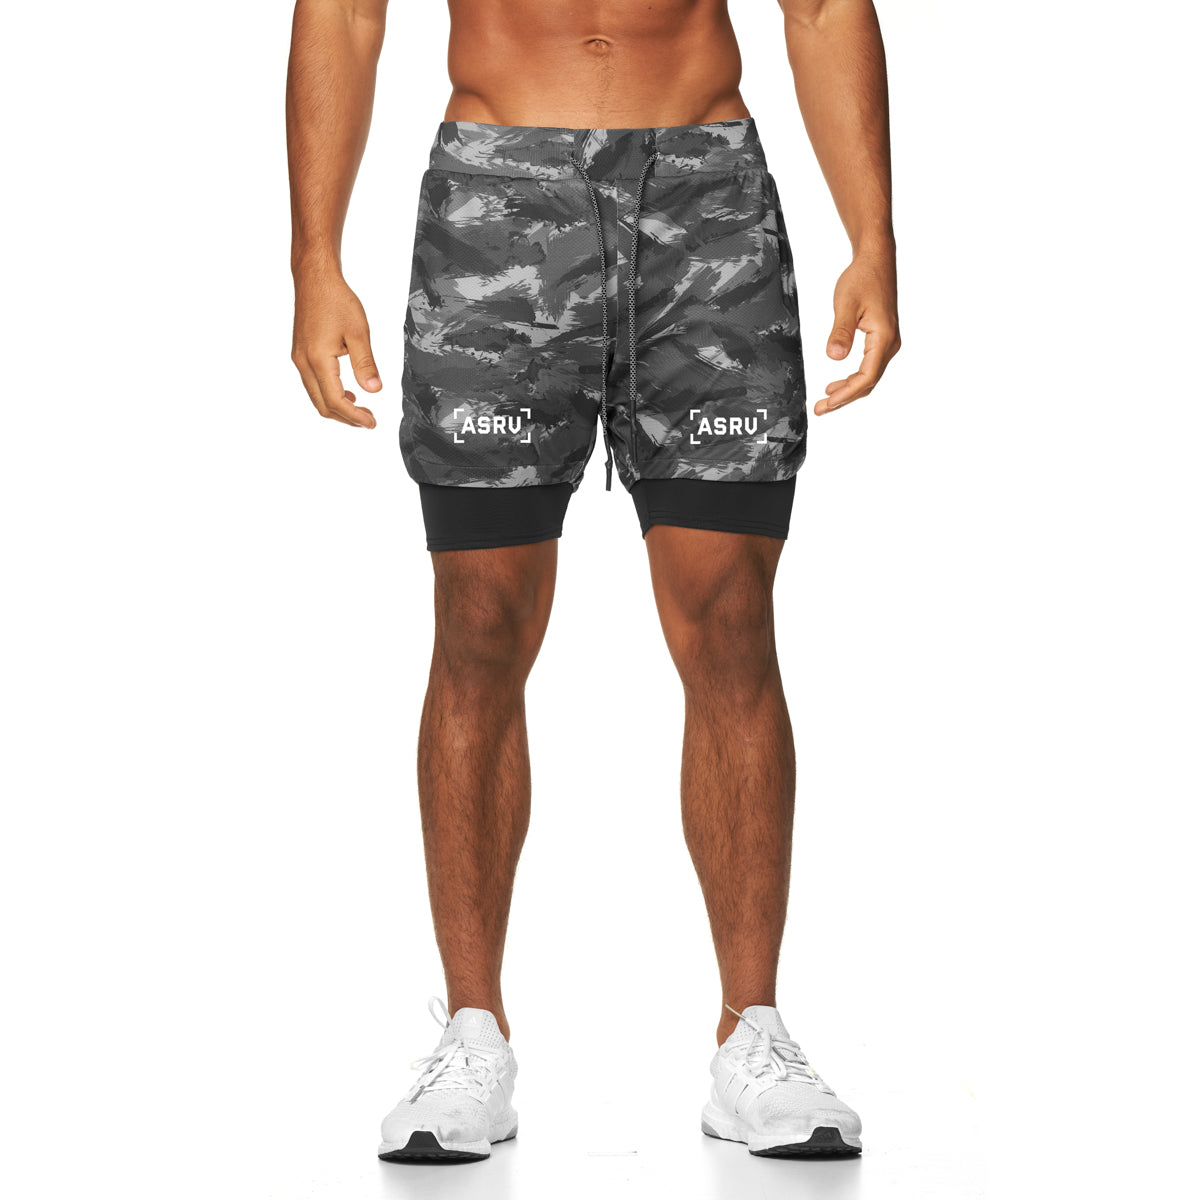 "0222. Silver-Lite® 5"" Liner Short - Black Brushed Camo"